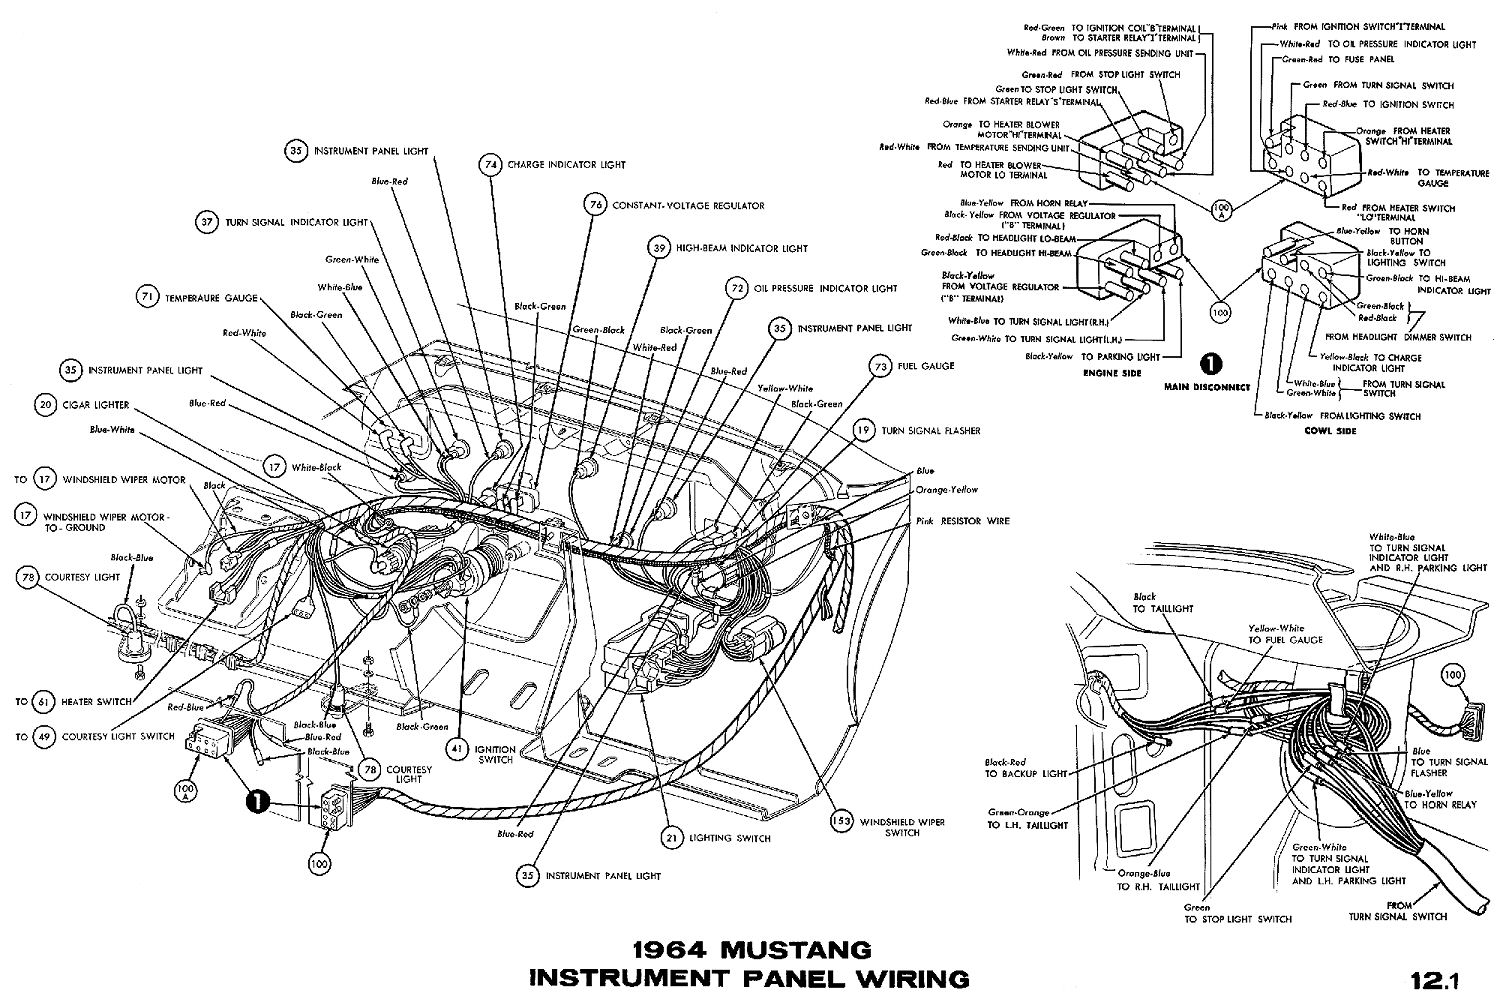 dash schematic wiring library 2003 Yukon Dash Schematic 1964 mustang wiring diagrams average joe restoration 1967 mustang radio wiring diagram 1968 mustang dash cluster